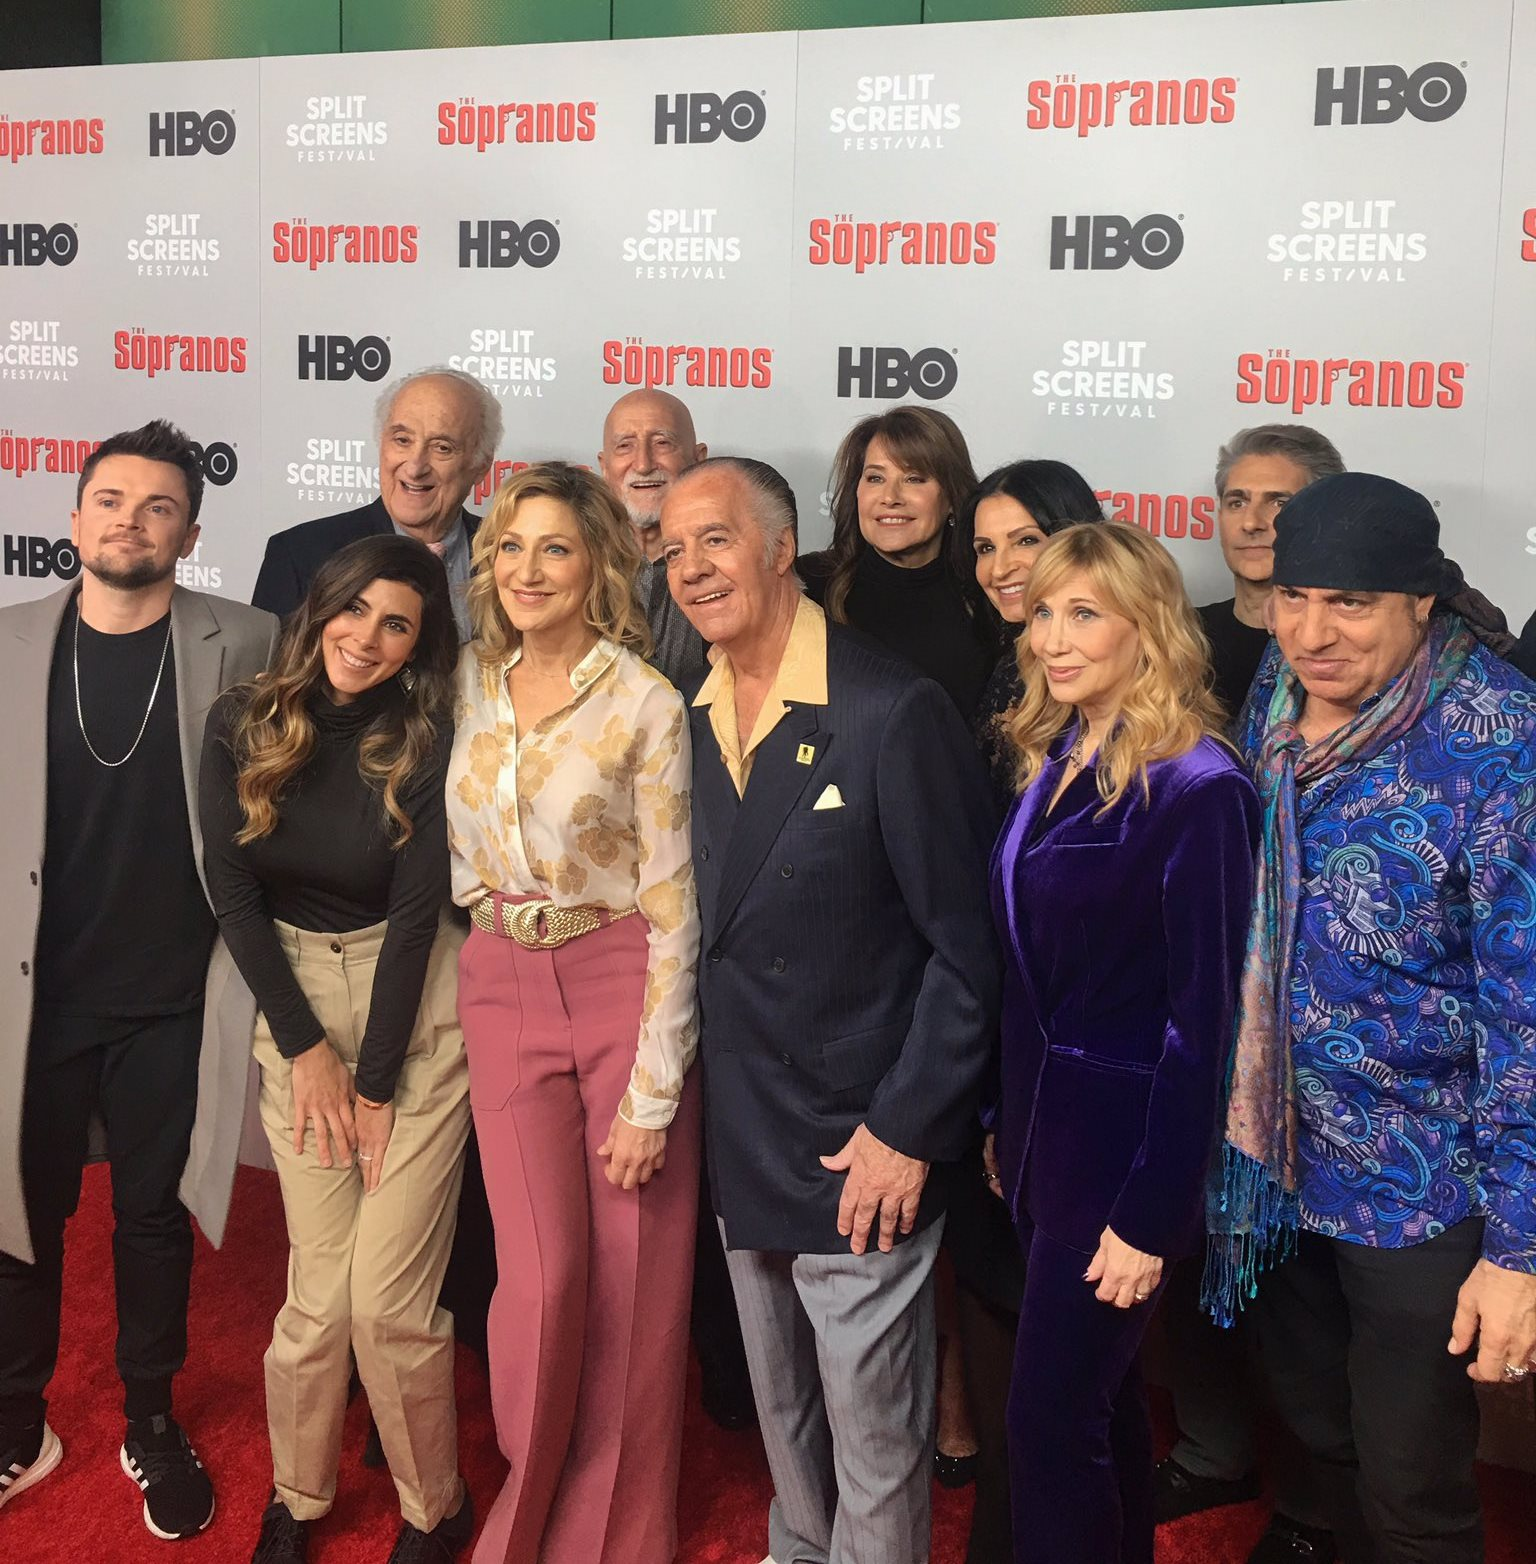 HBO, The Sopranos, Cult Report